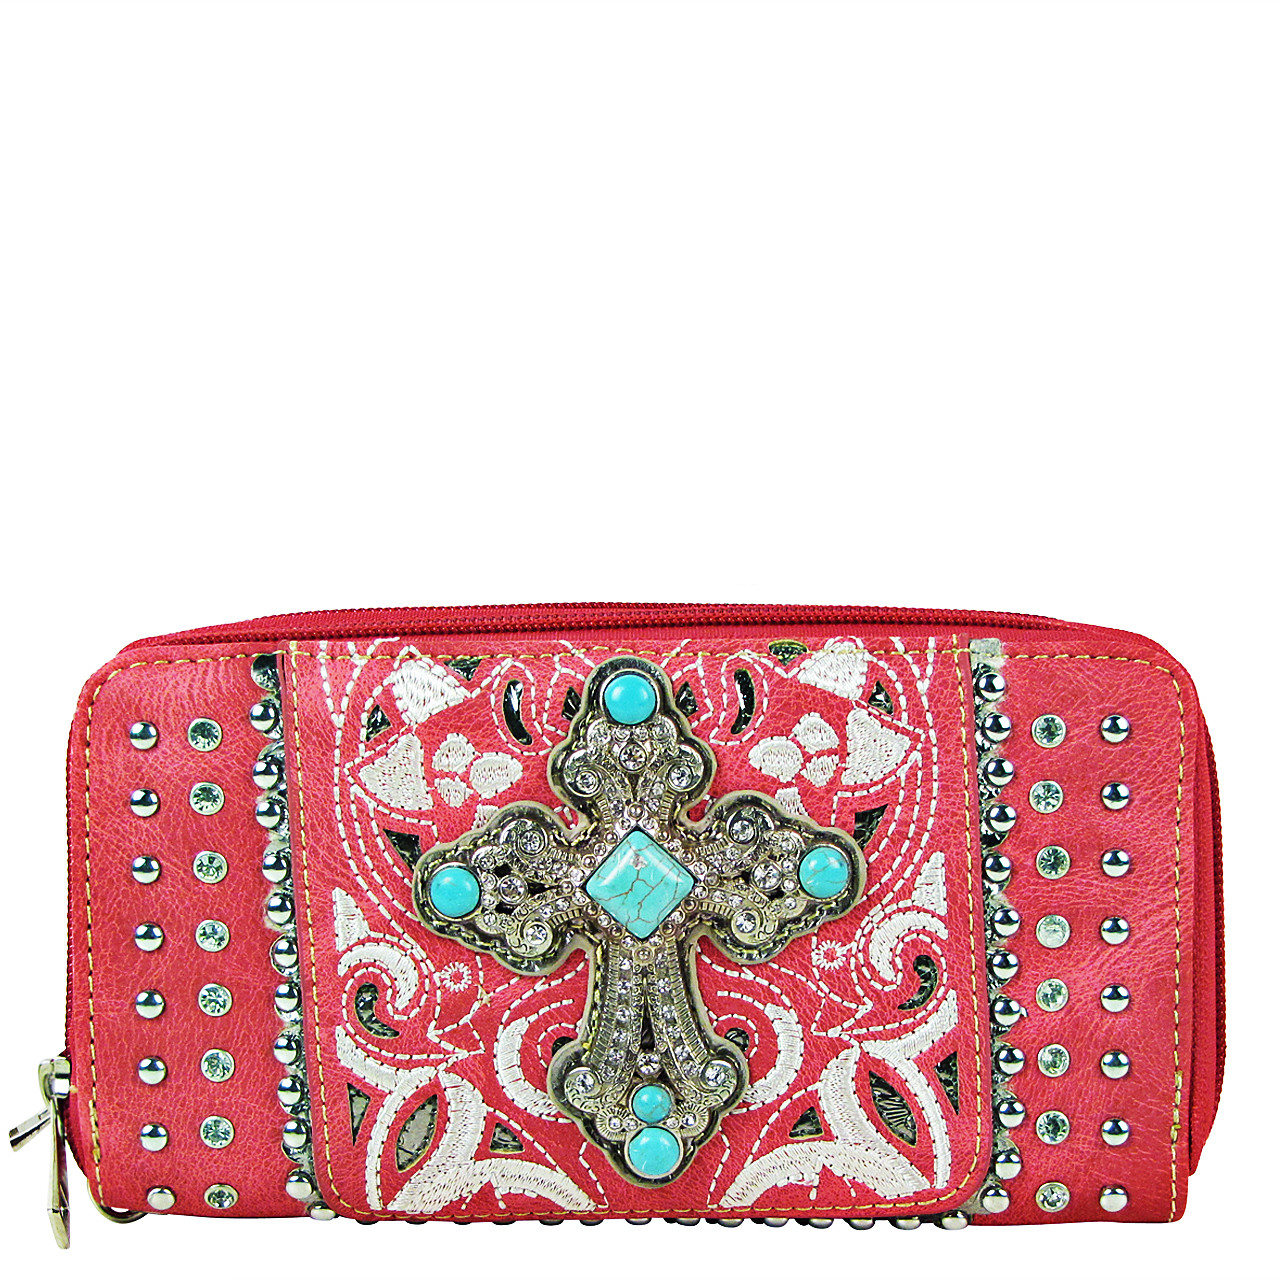 HOT PINK STUDDED RHINESTONE CROSS LOOK ZIPPER WALLET CB3-0409HPK